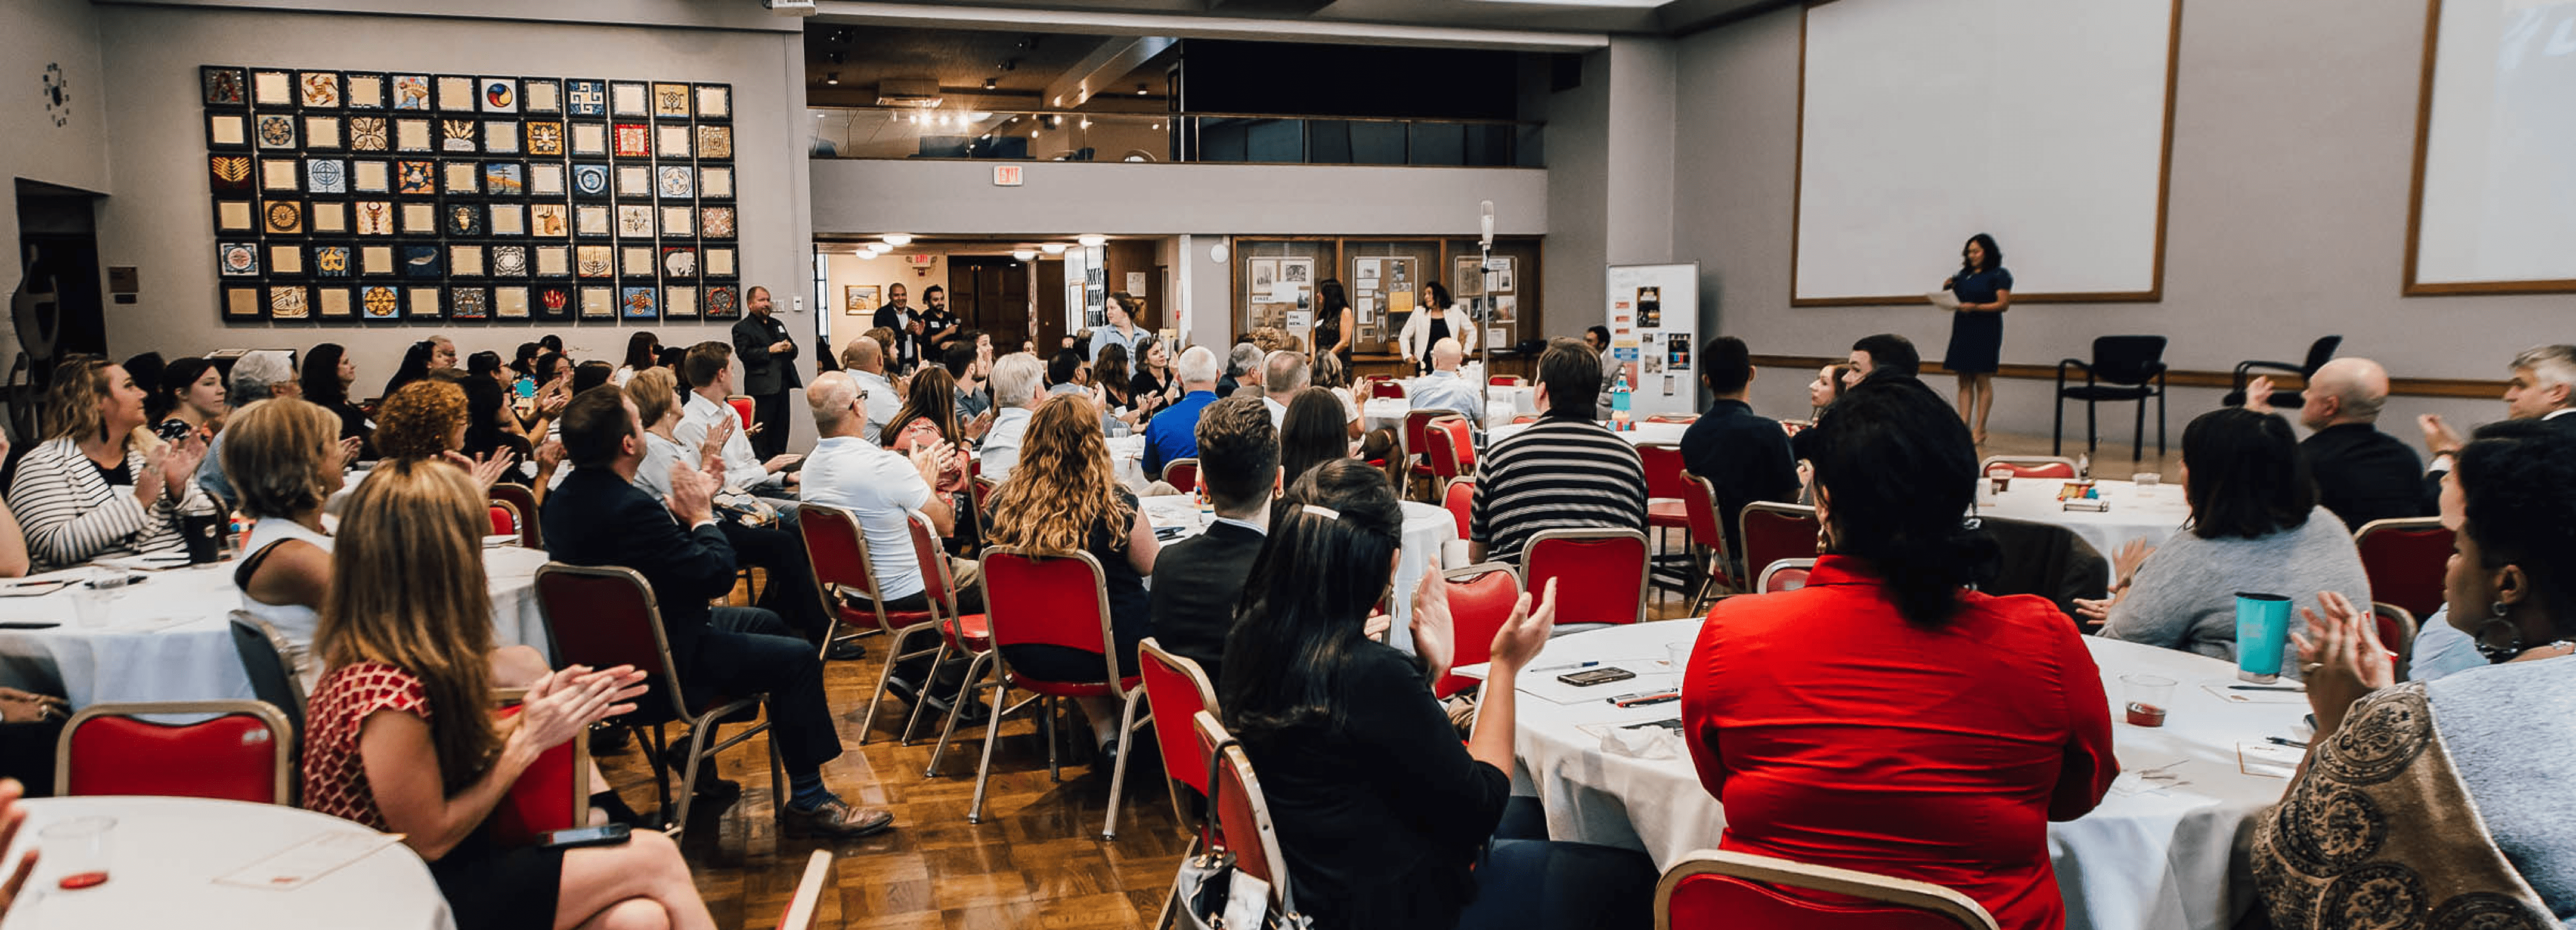 A group of people sit around tables at an event, applauding while a speaker reads on stage.